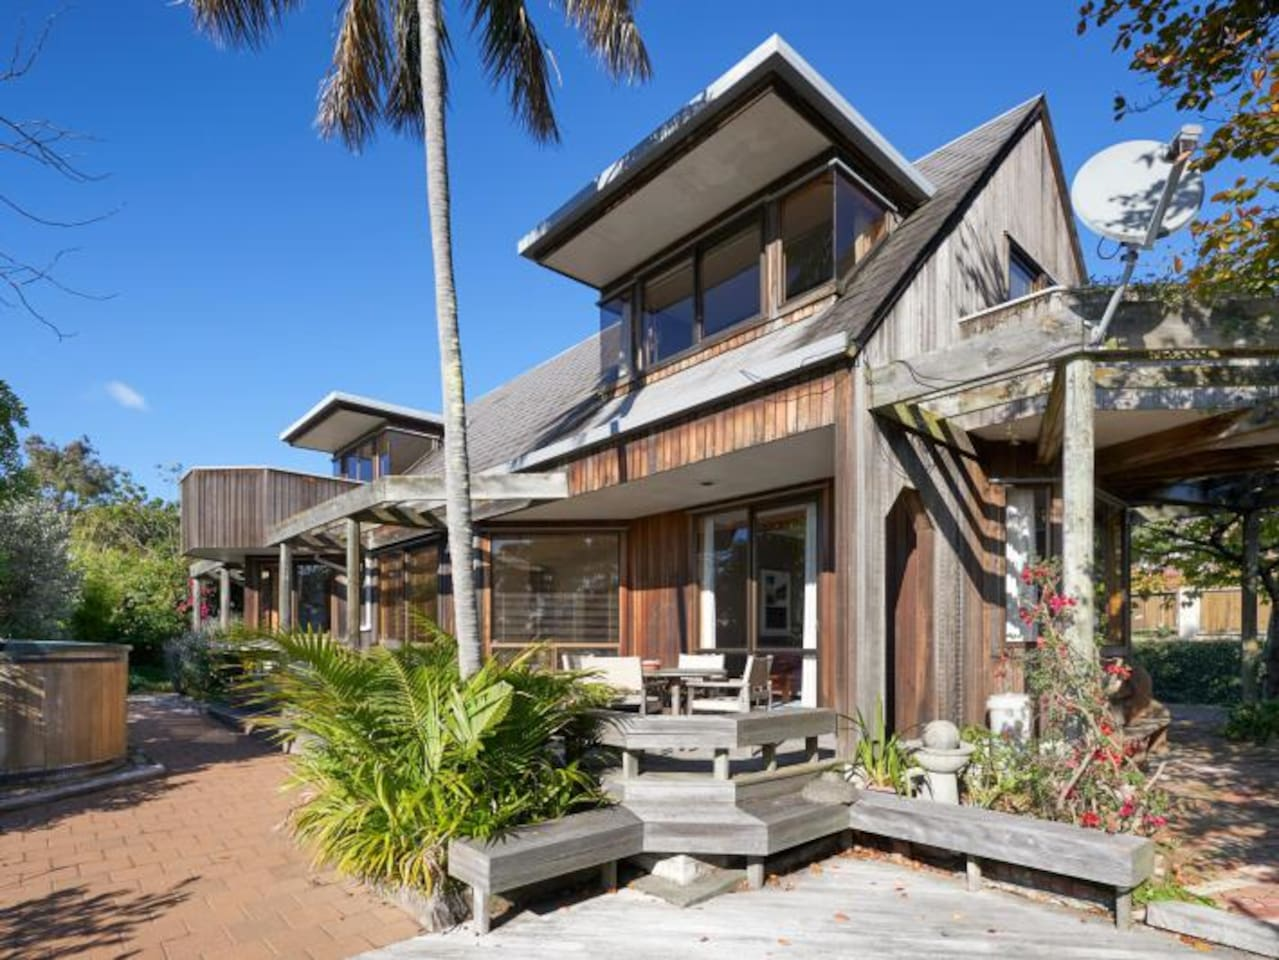 An architecually home giving a peaceful space close to the CBD and all amenities at your disposal. North West facing towards the sea means there is pleanty of sun and a pictureque view. A short walk will take you to the local Bluff Hill Look Out.